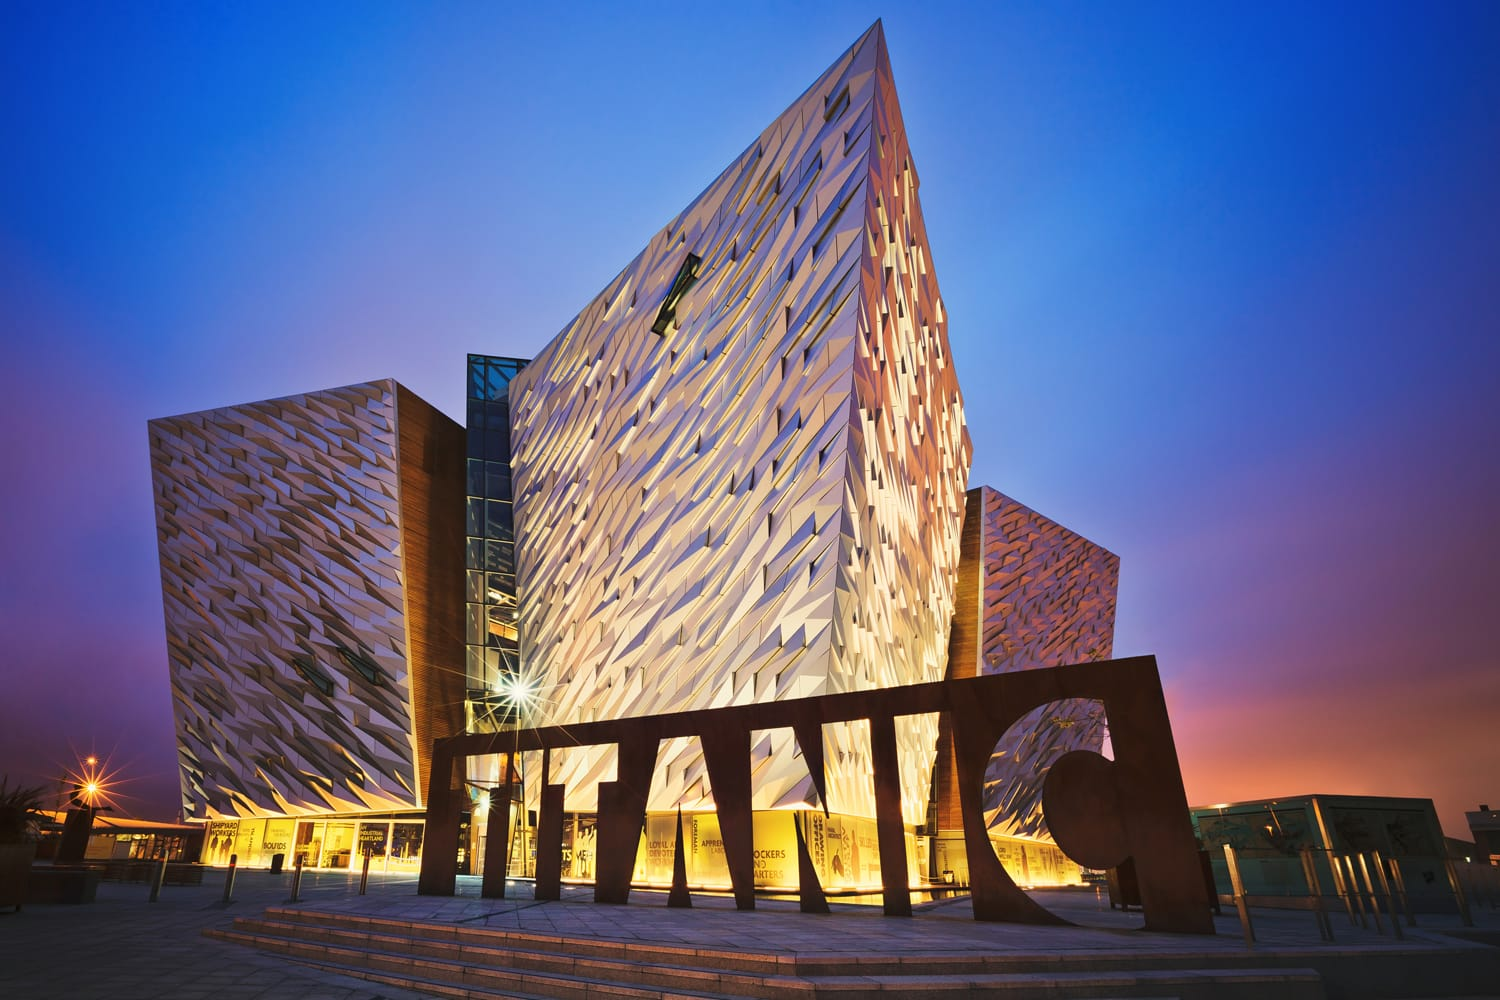 Sunset over Titanic Belfast - museum, touristic attraction and monument to Belfast's maritime heritage on the site of the former Harland and Wolff shipyard.